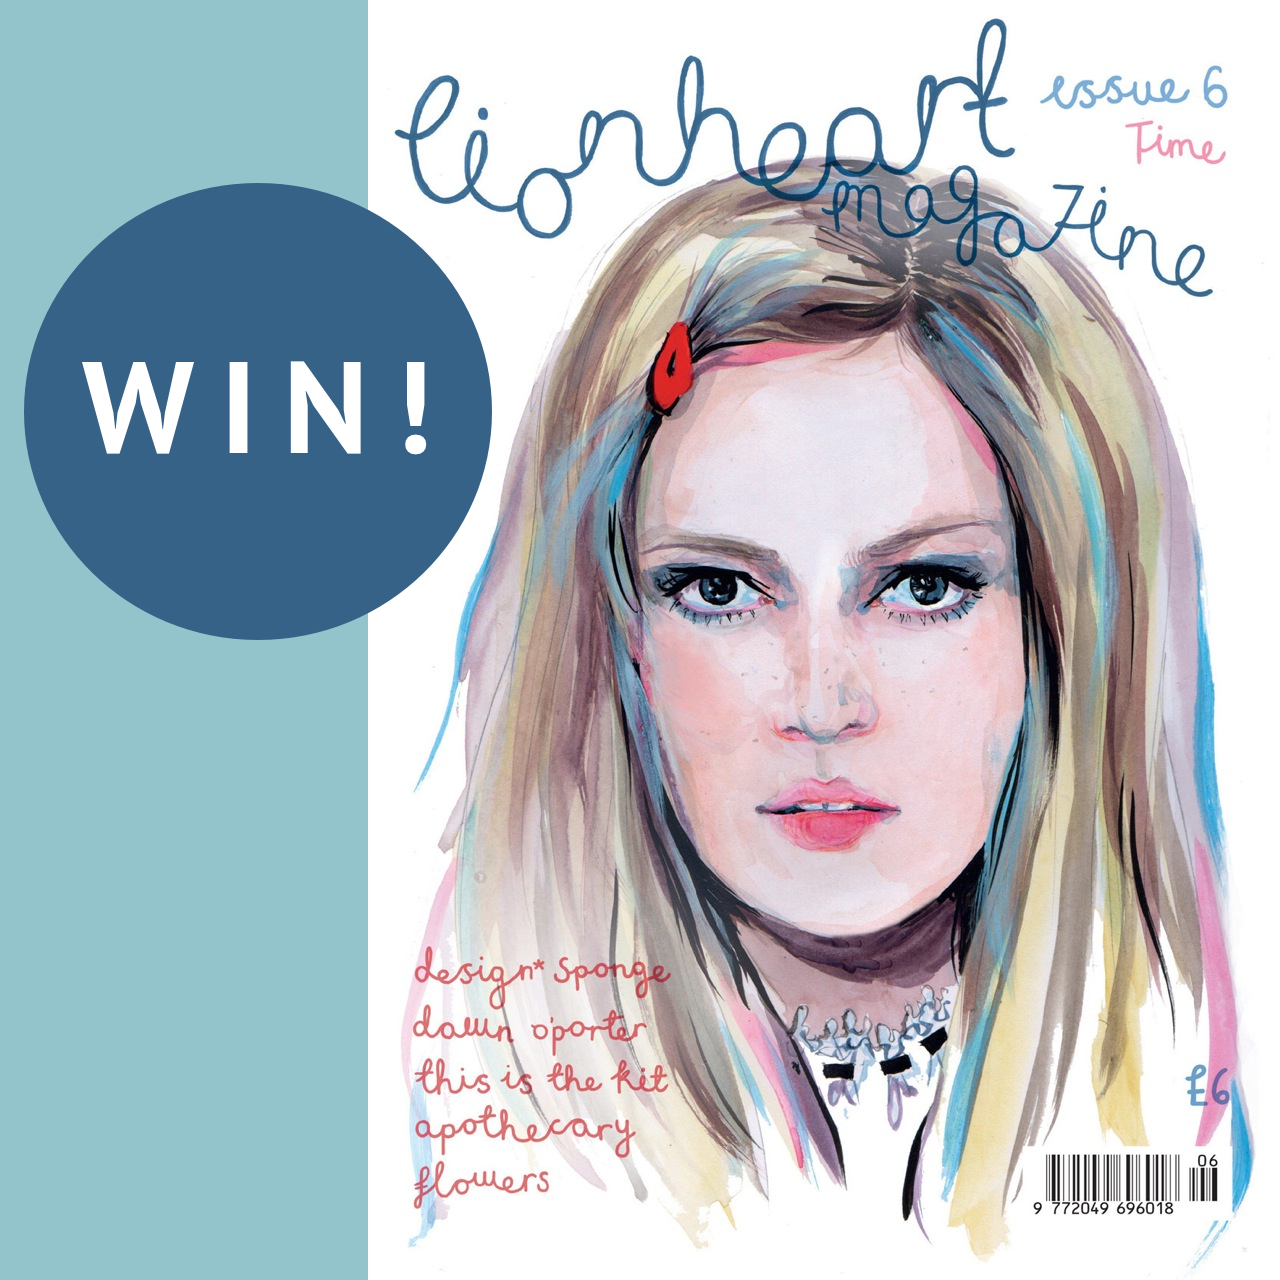 Win a copy of Lionheart Magazine –  5 copies to give away!